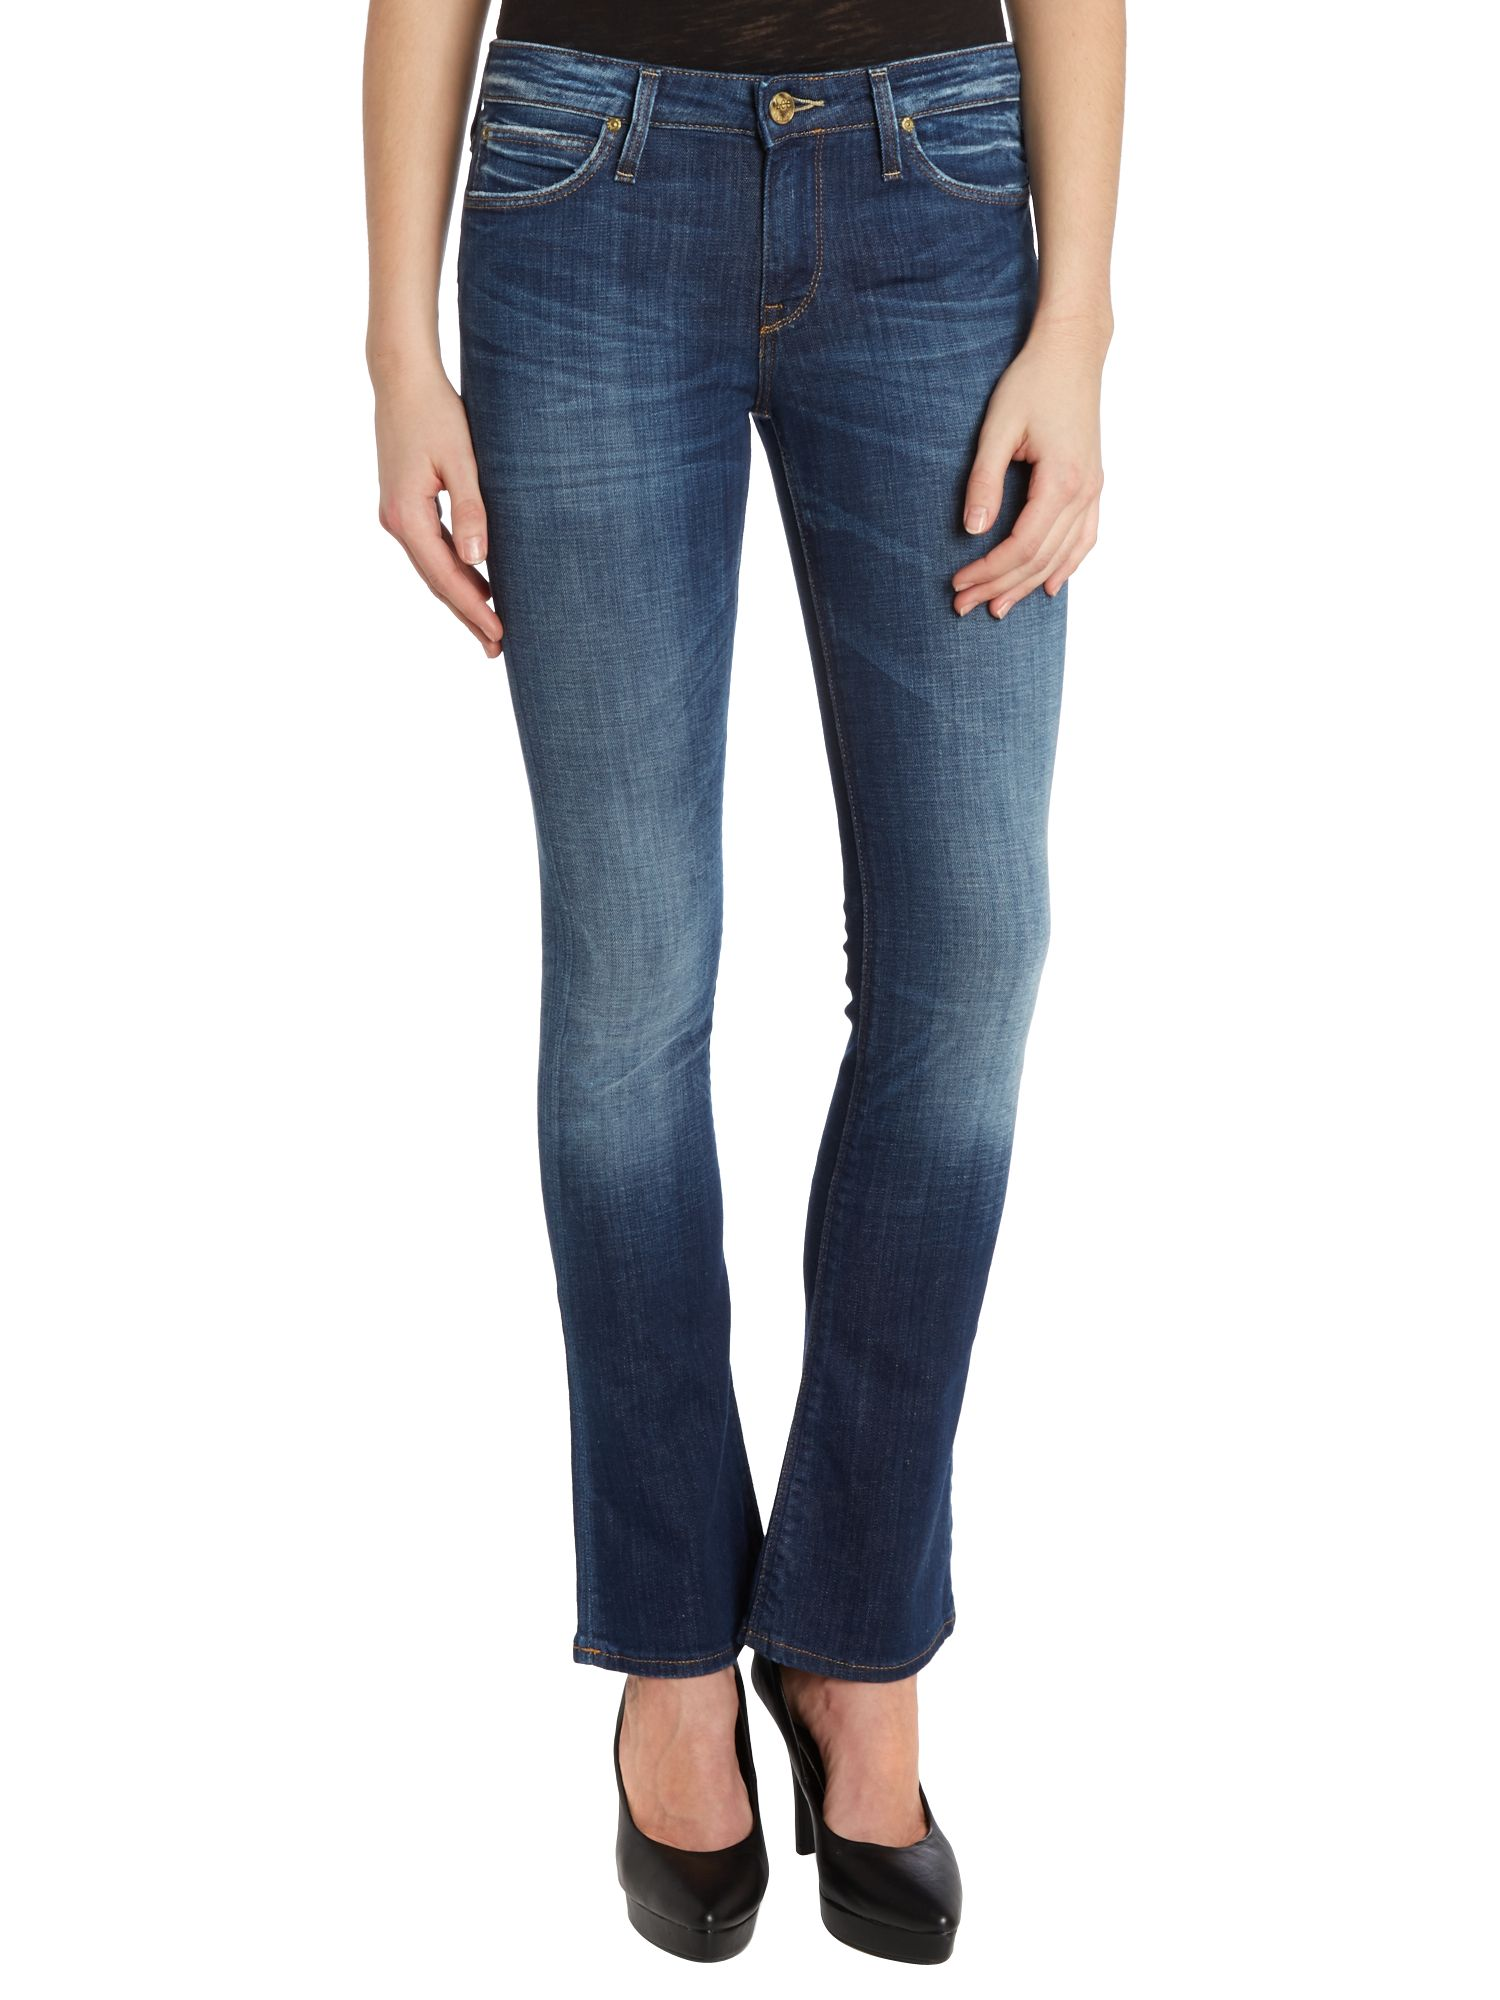 Emelle baby bootcut jeans in Deep Clush